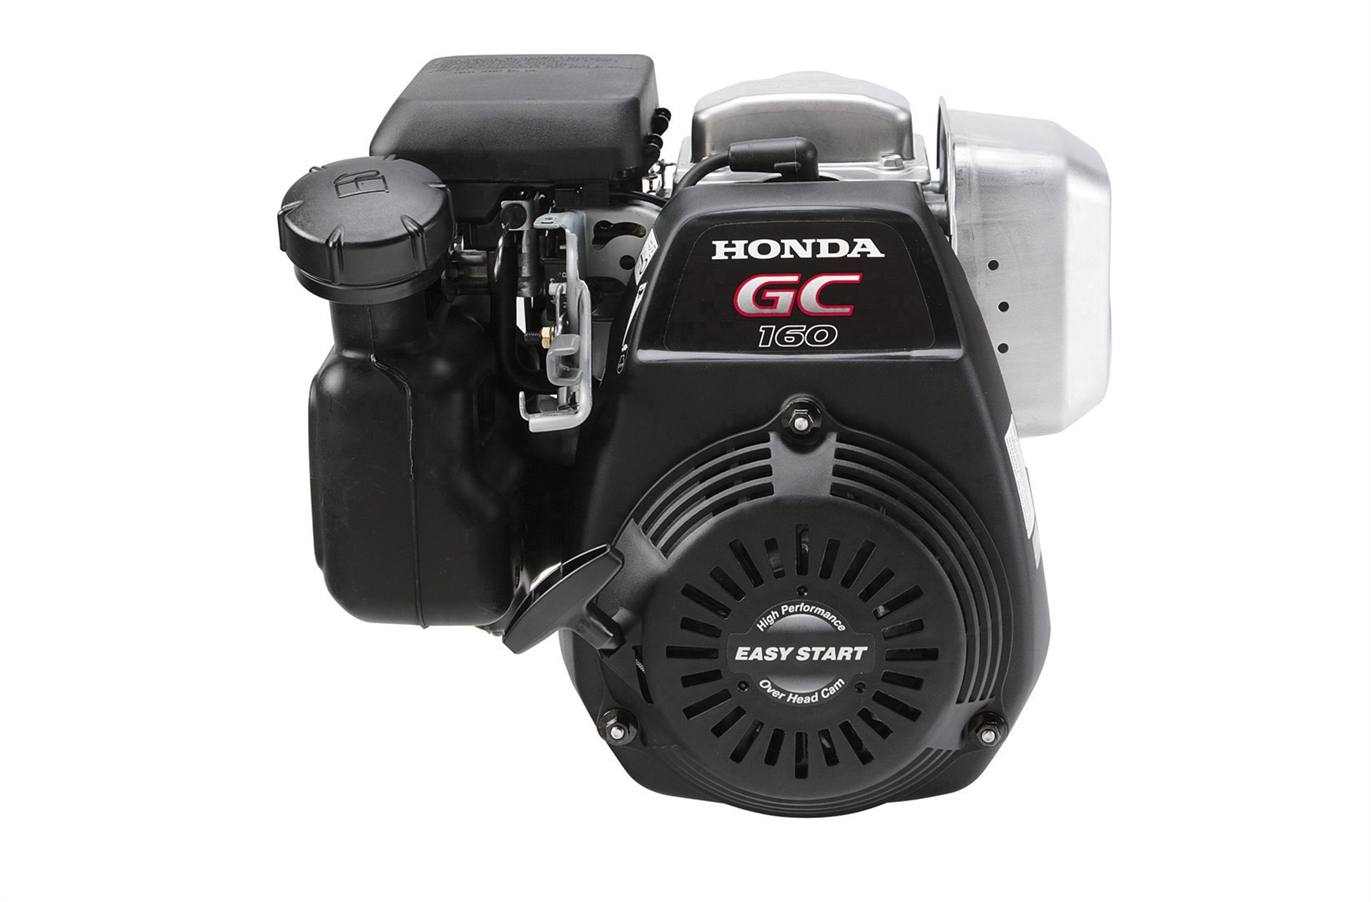 Honda Engines GC160 for sale in Calgary, AB  Rocky Mountain